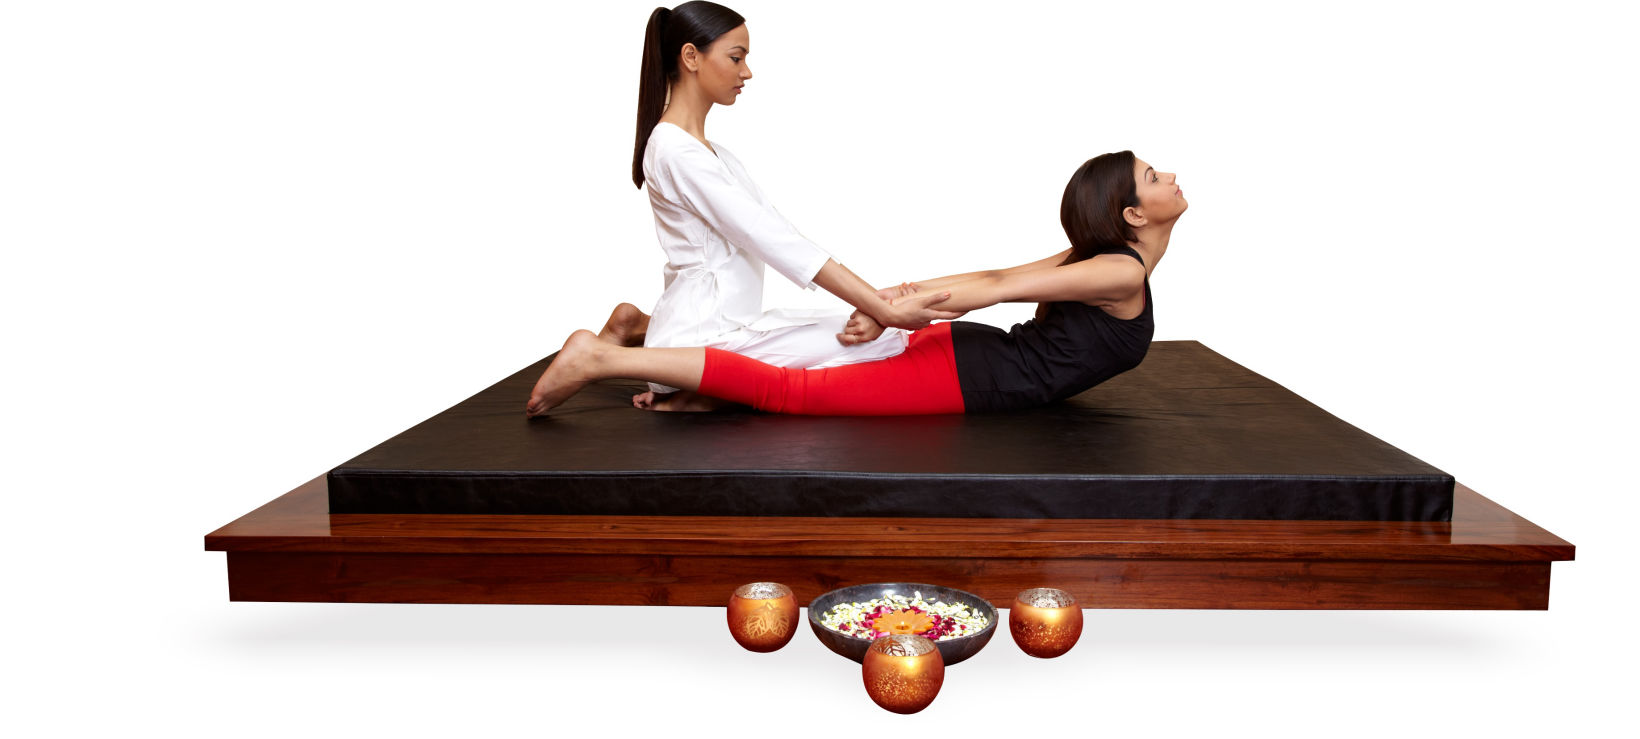 Thai Massage Bed